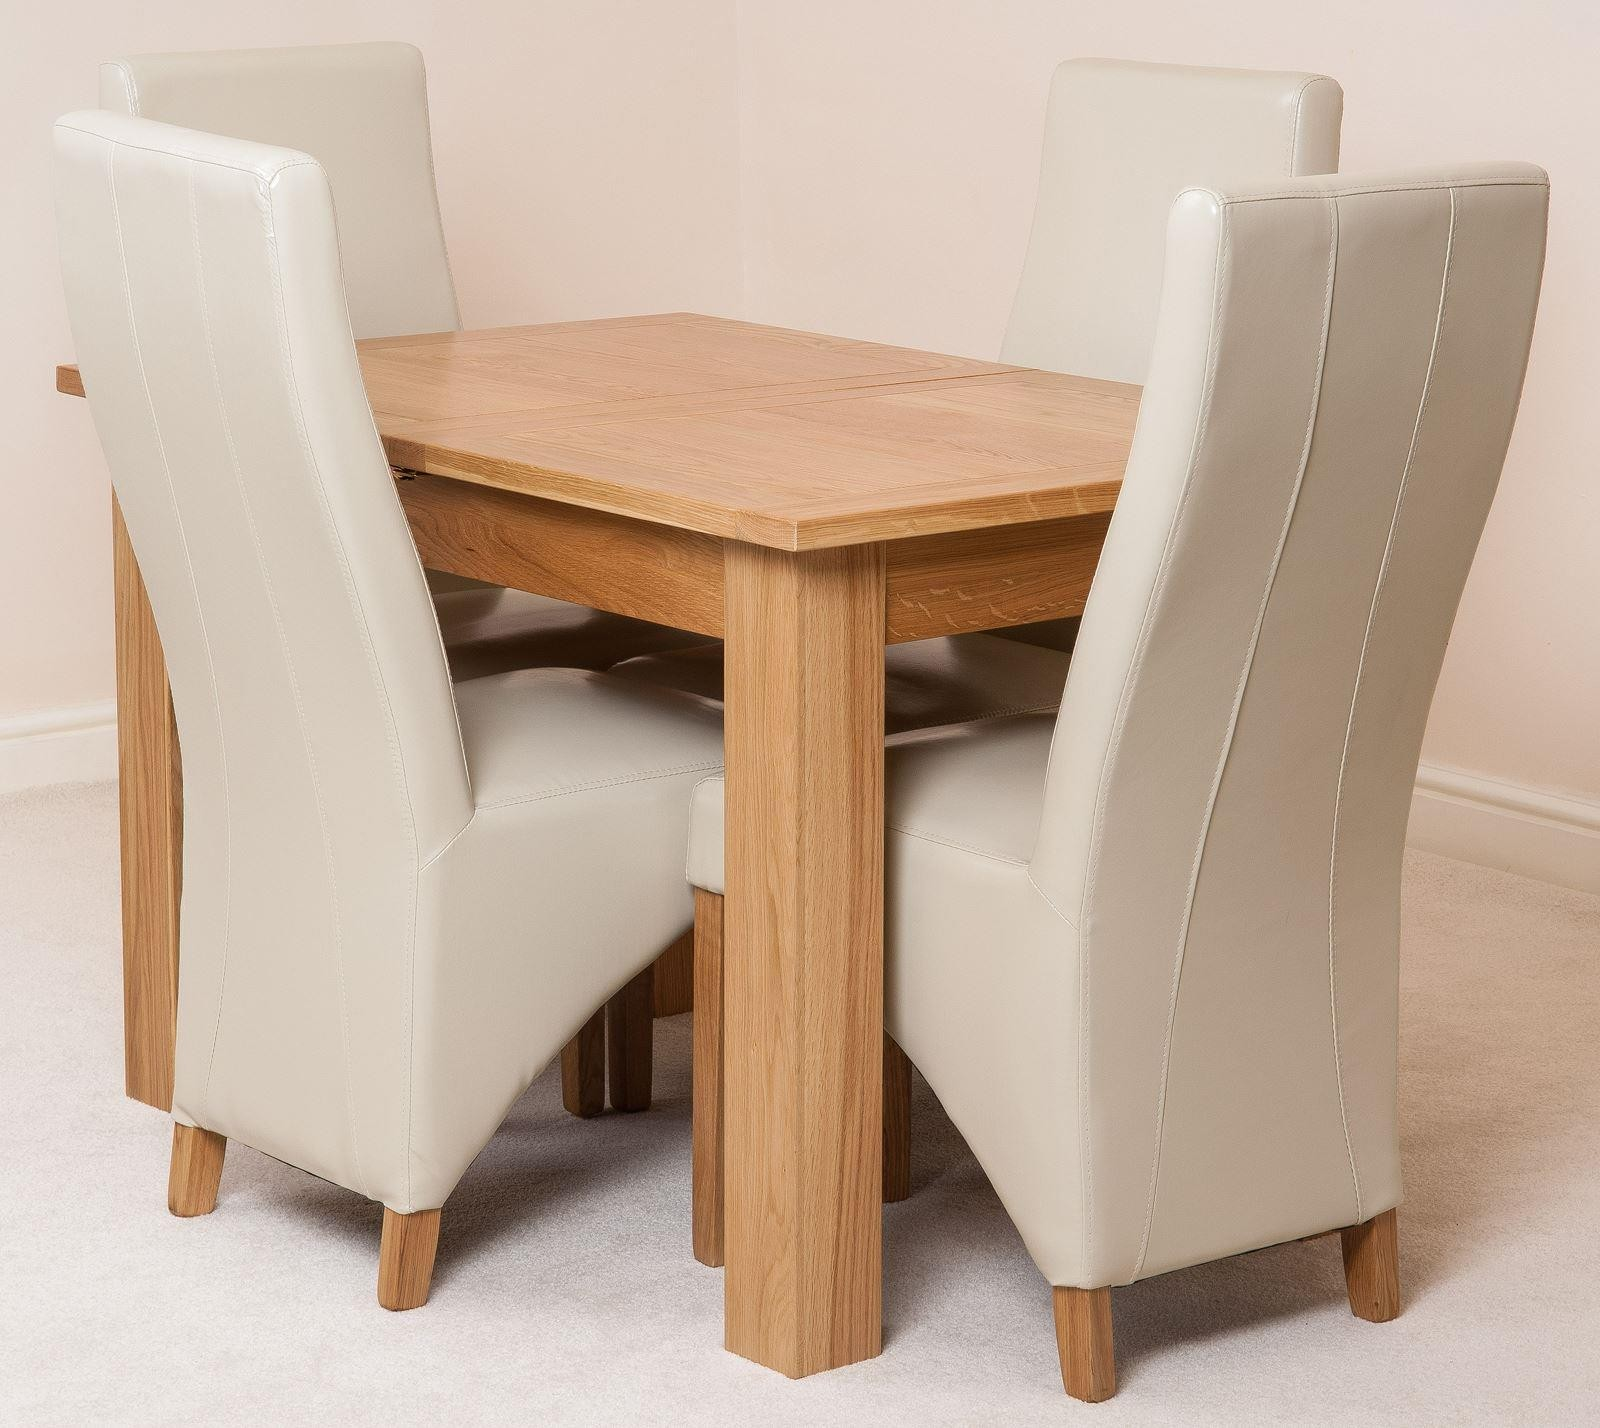 Hampton Solid Oak 120-160cm Extending Dining Table with 4 Lola Dining Chairs [Ivory Leather]